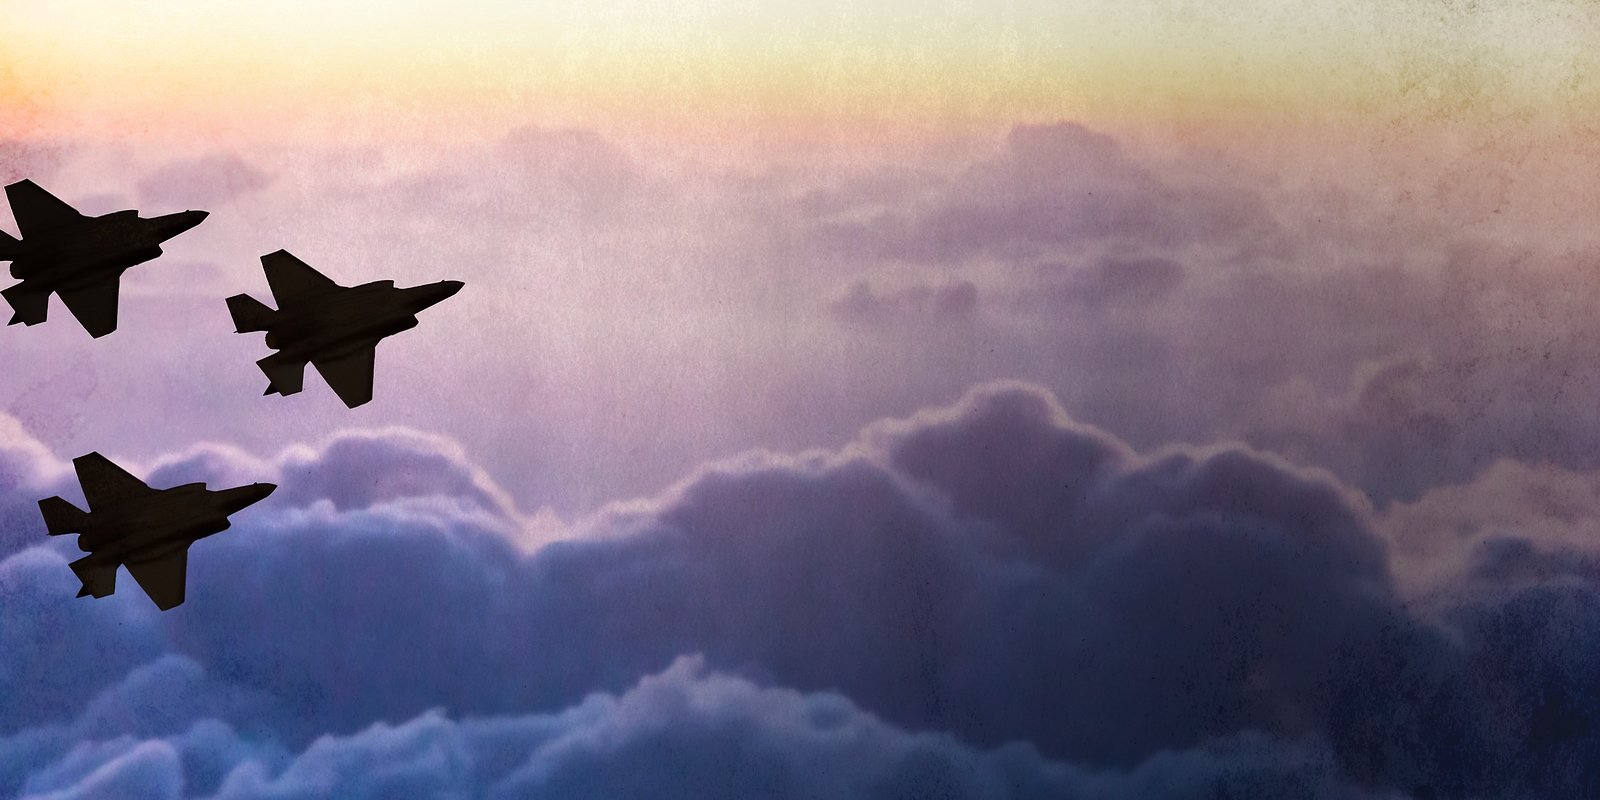 Silhouettes of three F-35 aircraft on sunset sky background